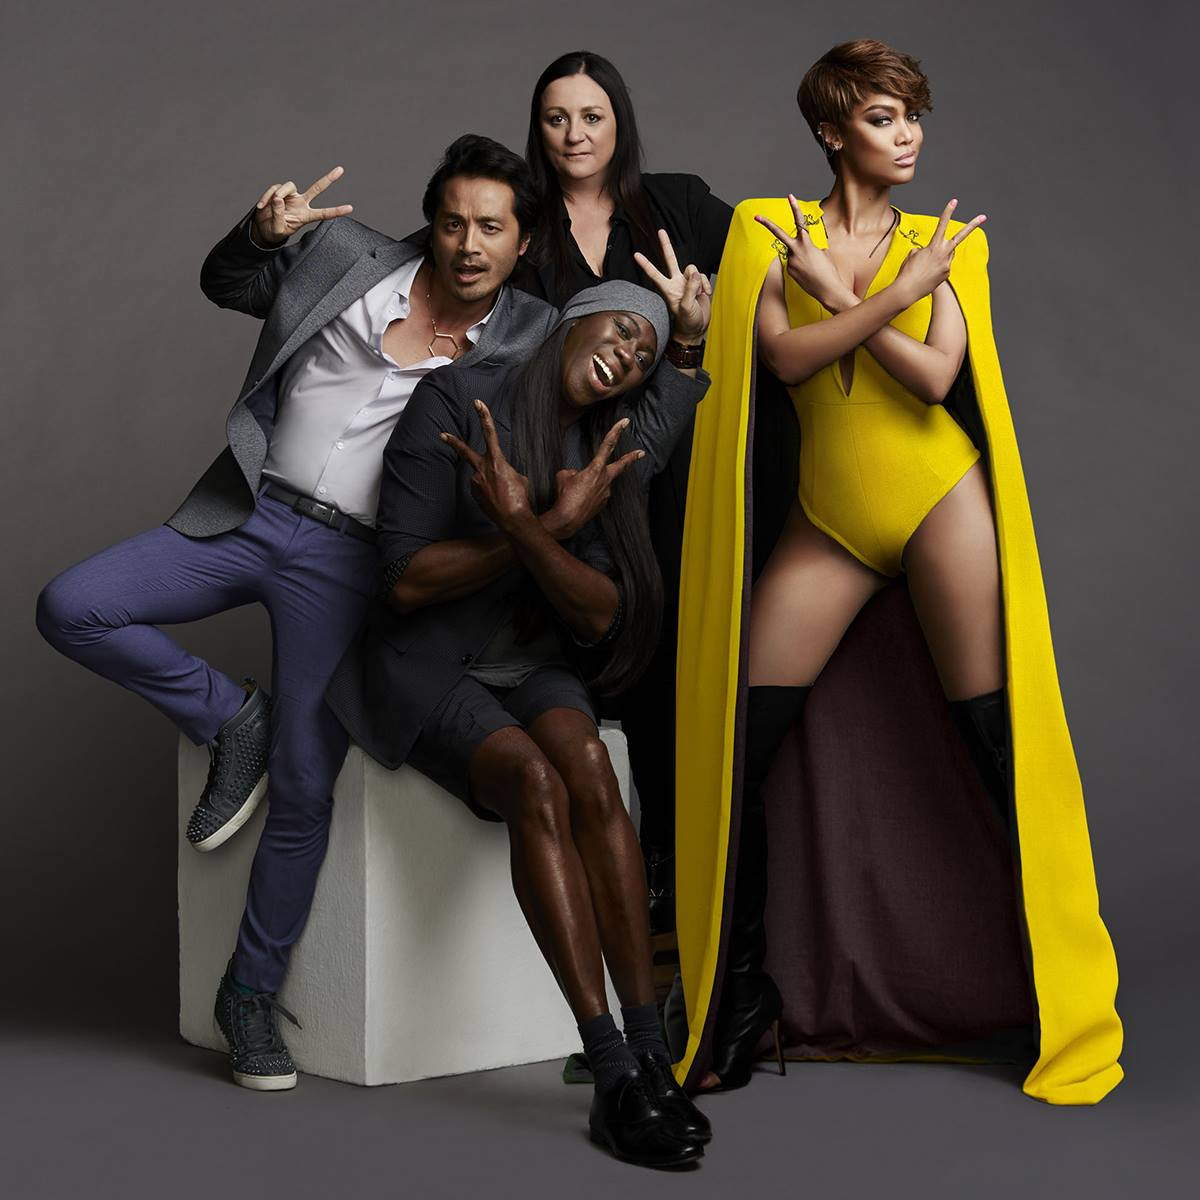 """Tyra Banks Antm: """"America's Next Top Model"""" To End After 12 Years"""